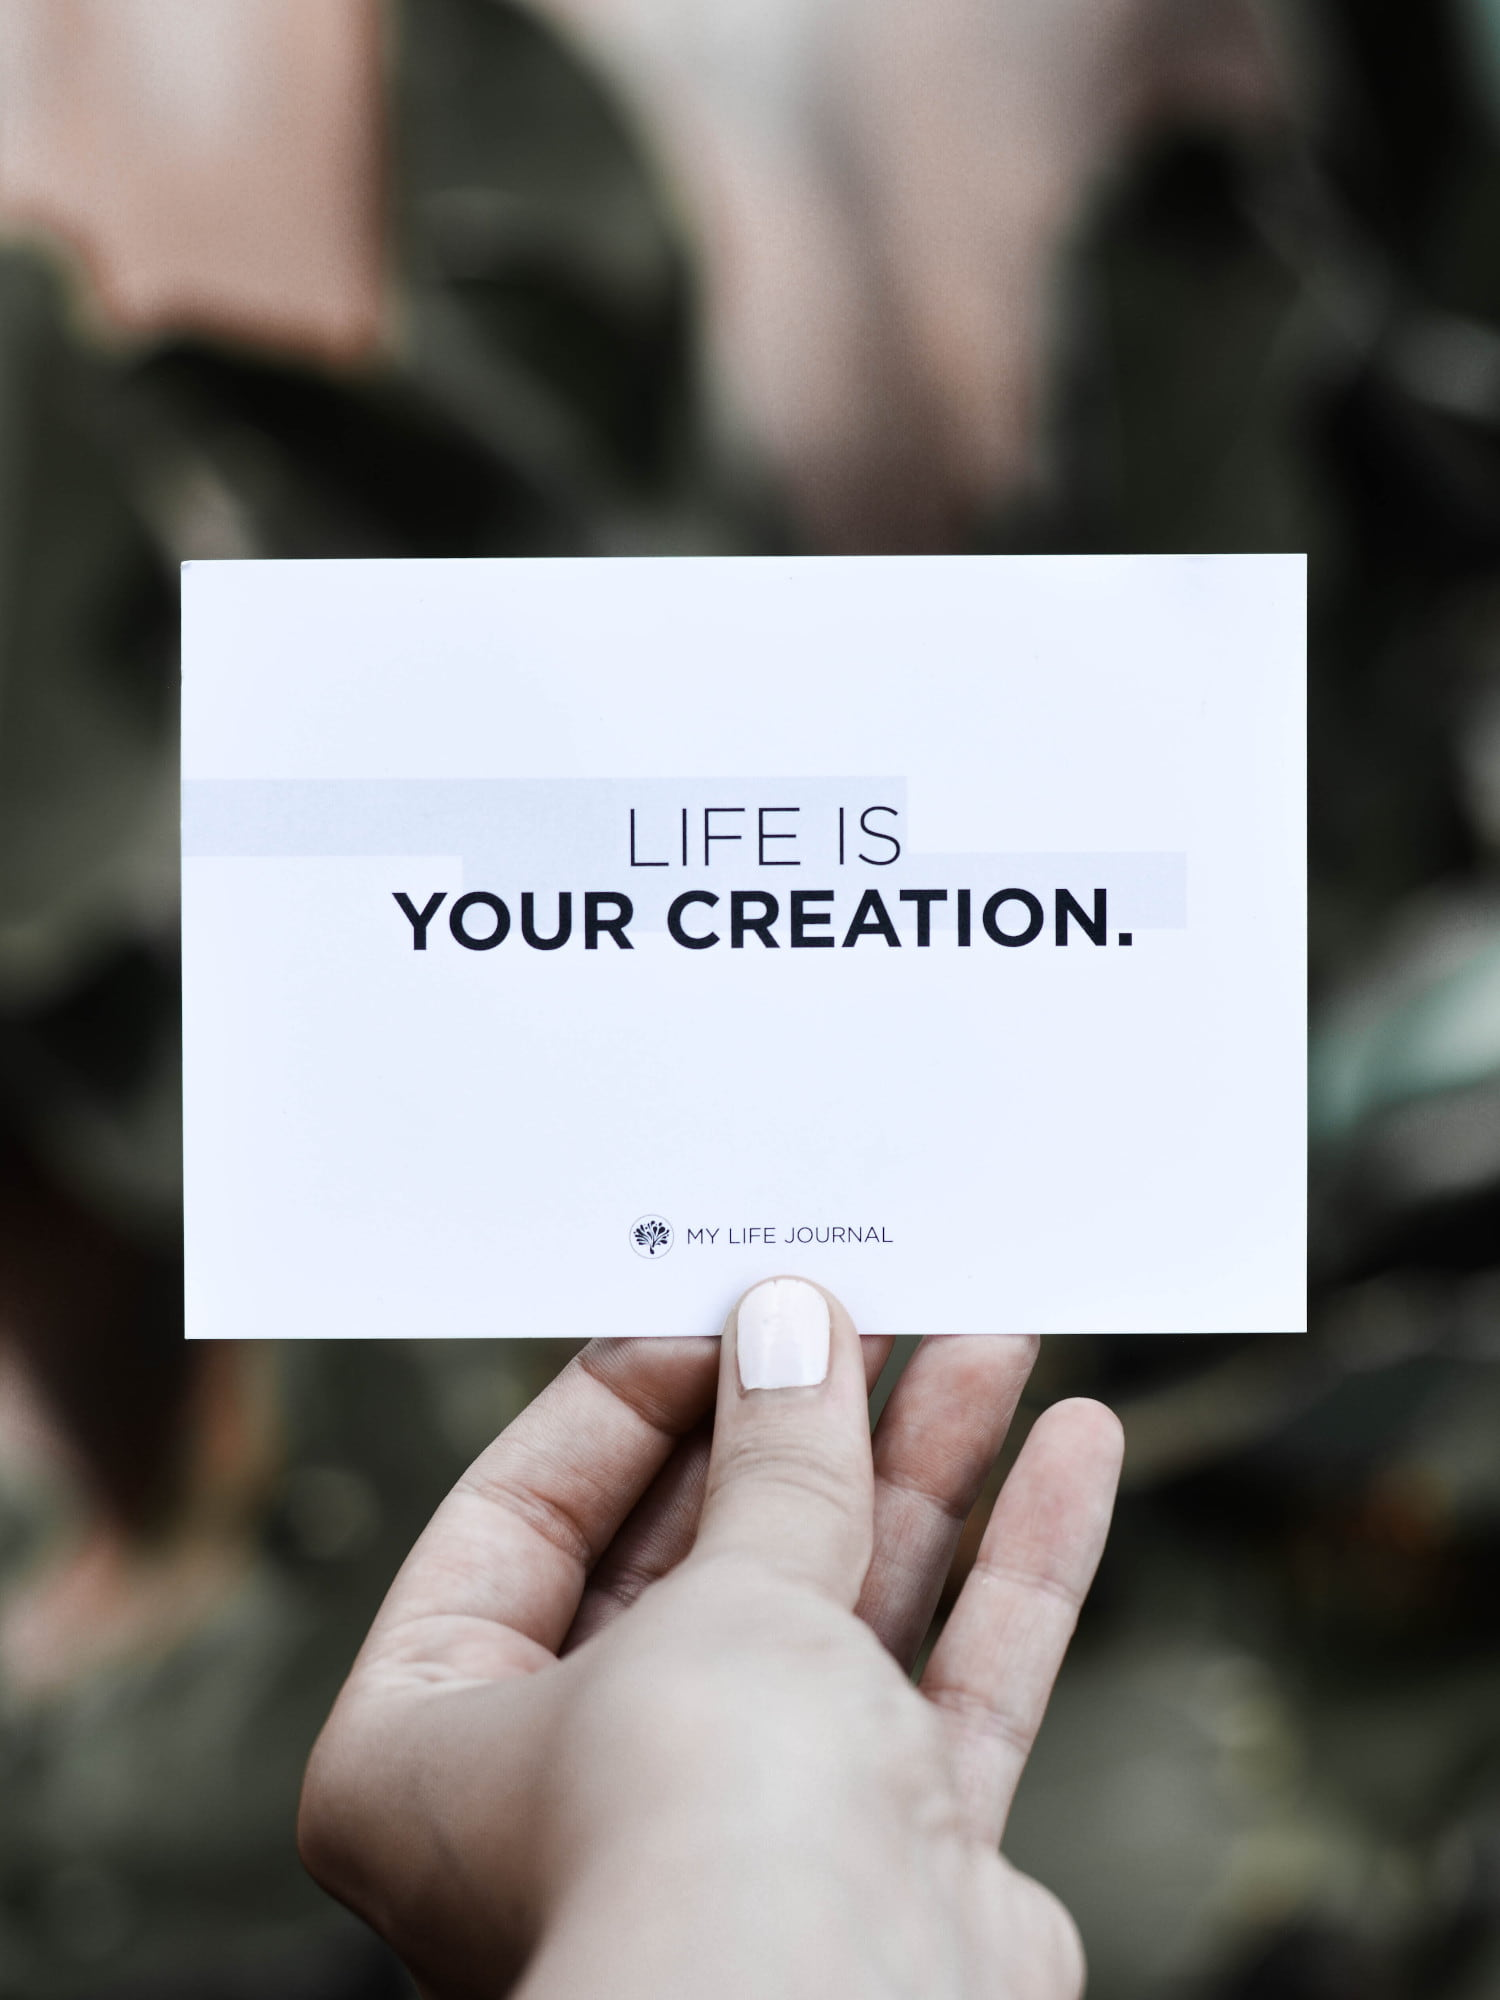 Life is your creation